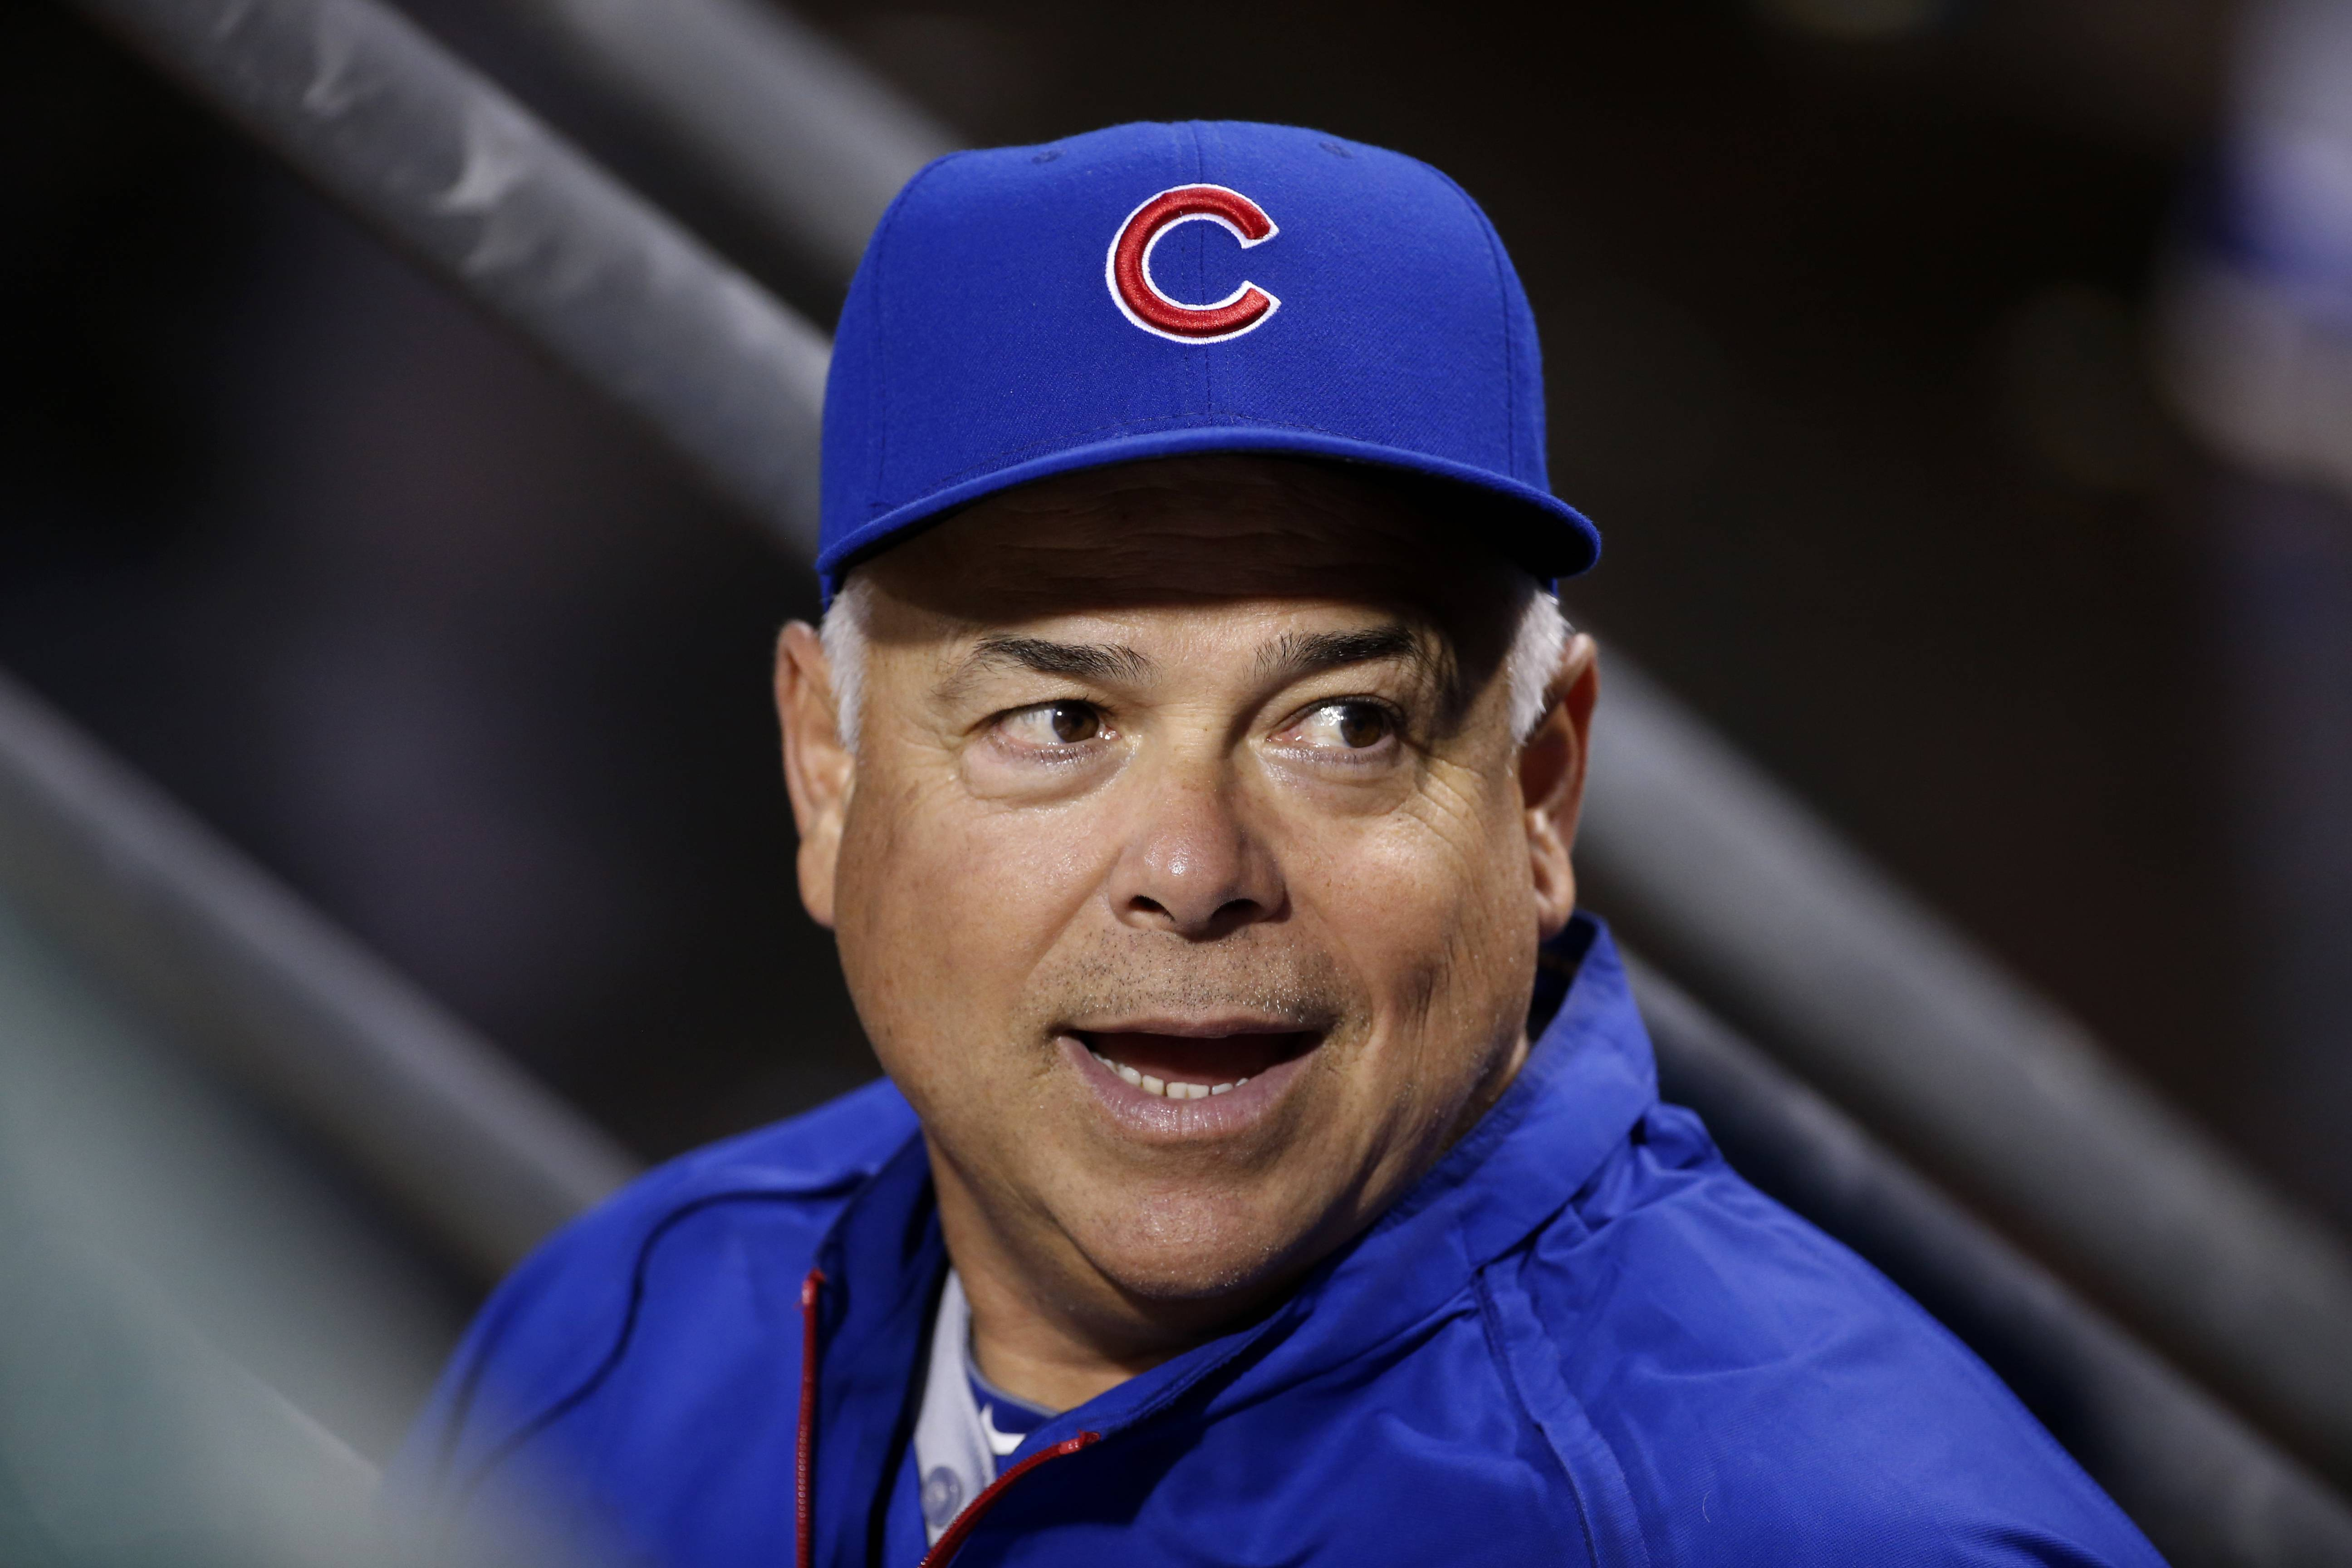 Cubs manager Rick Renteria has seen his offense provide more support lately for his starting pitchers.